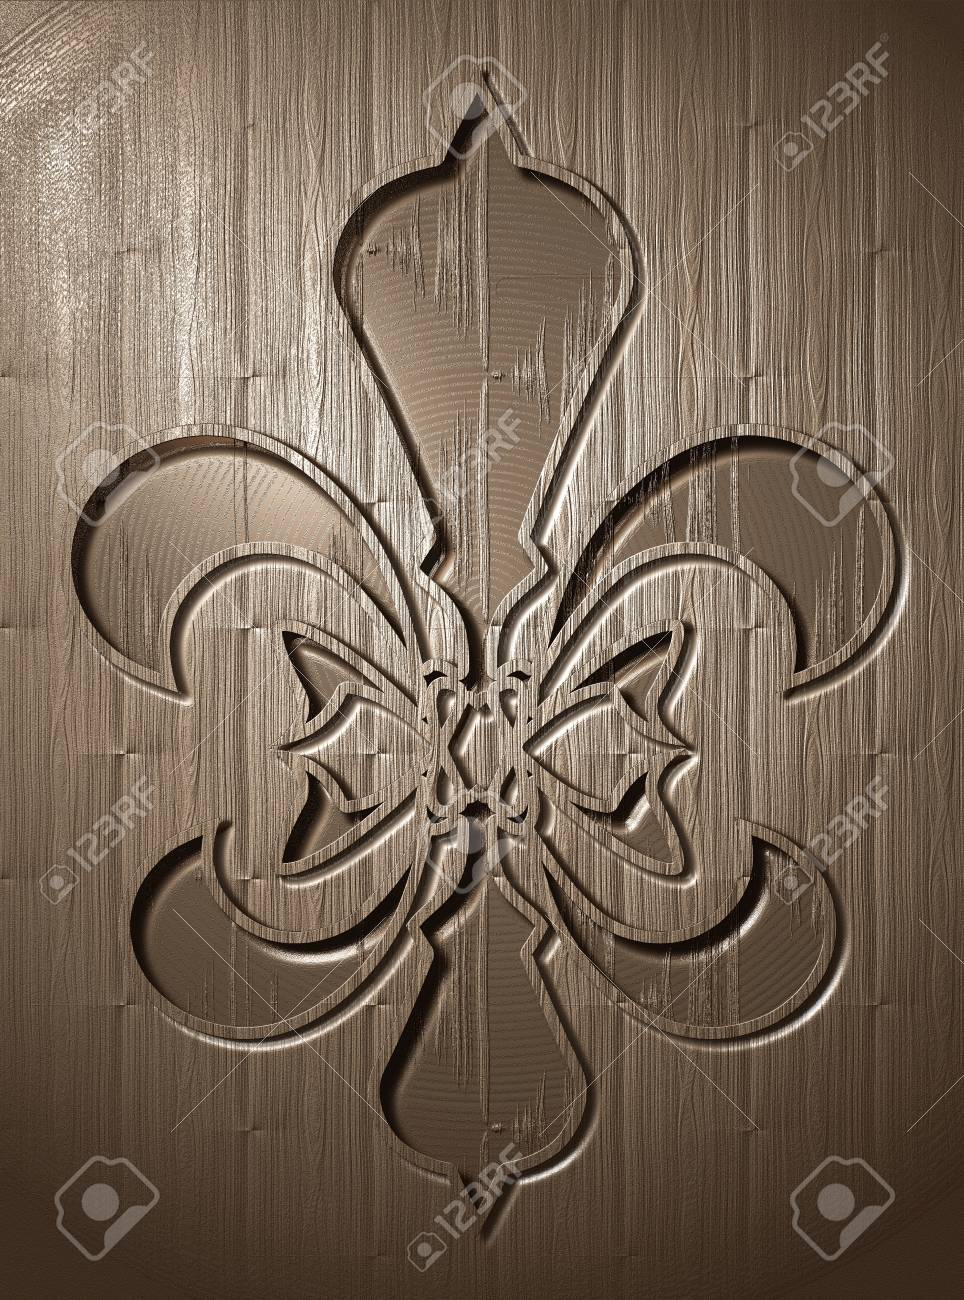 Fleur De Lis Relief On Wooden Background Engraving Style Stock